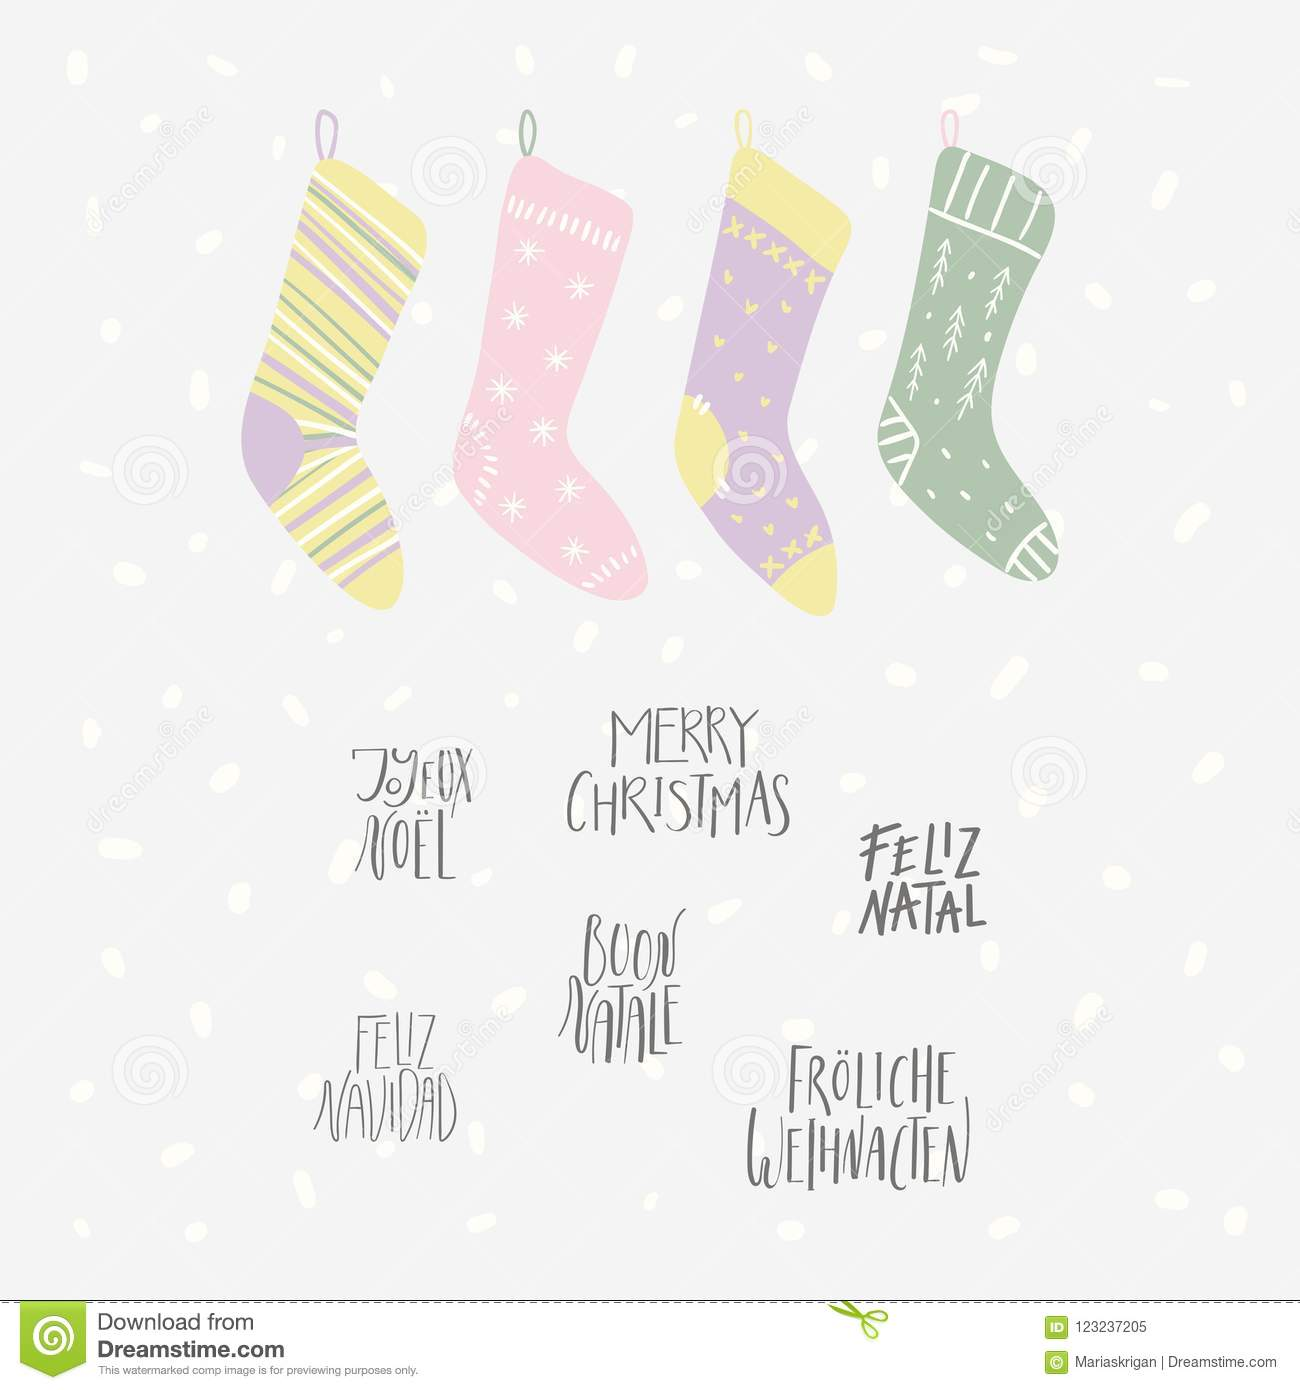 Cute Christmas Quotes Christmas stockings card stock vector. Illustration of girl  Cute Christmas Quotes